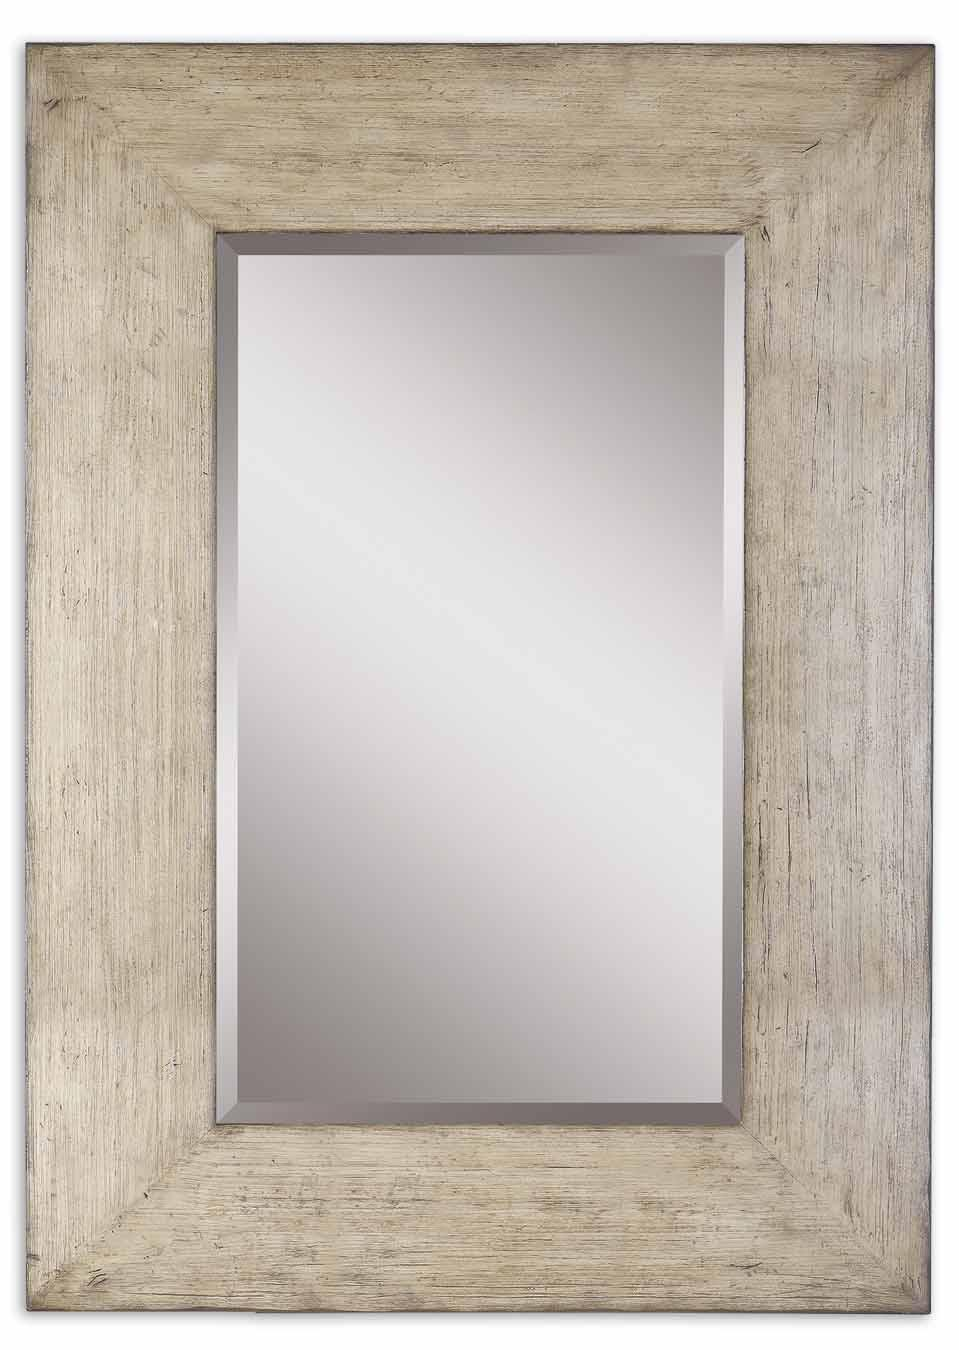 Uttermost Mirrors Langford Natural Mirror - Item Number: 09508